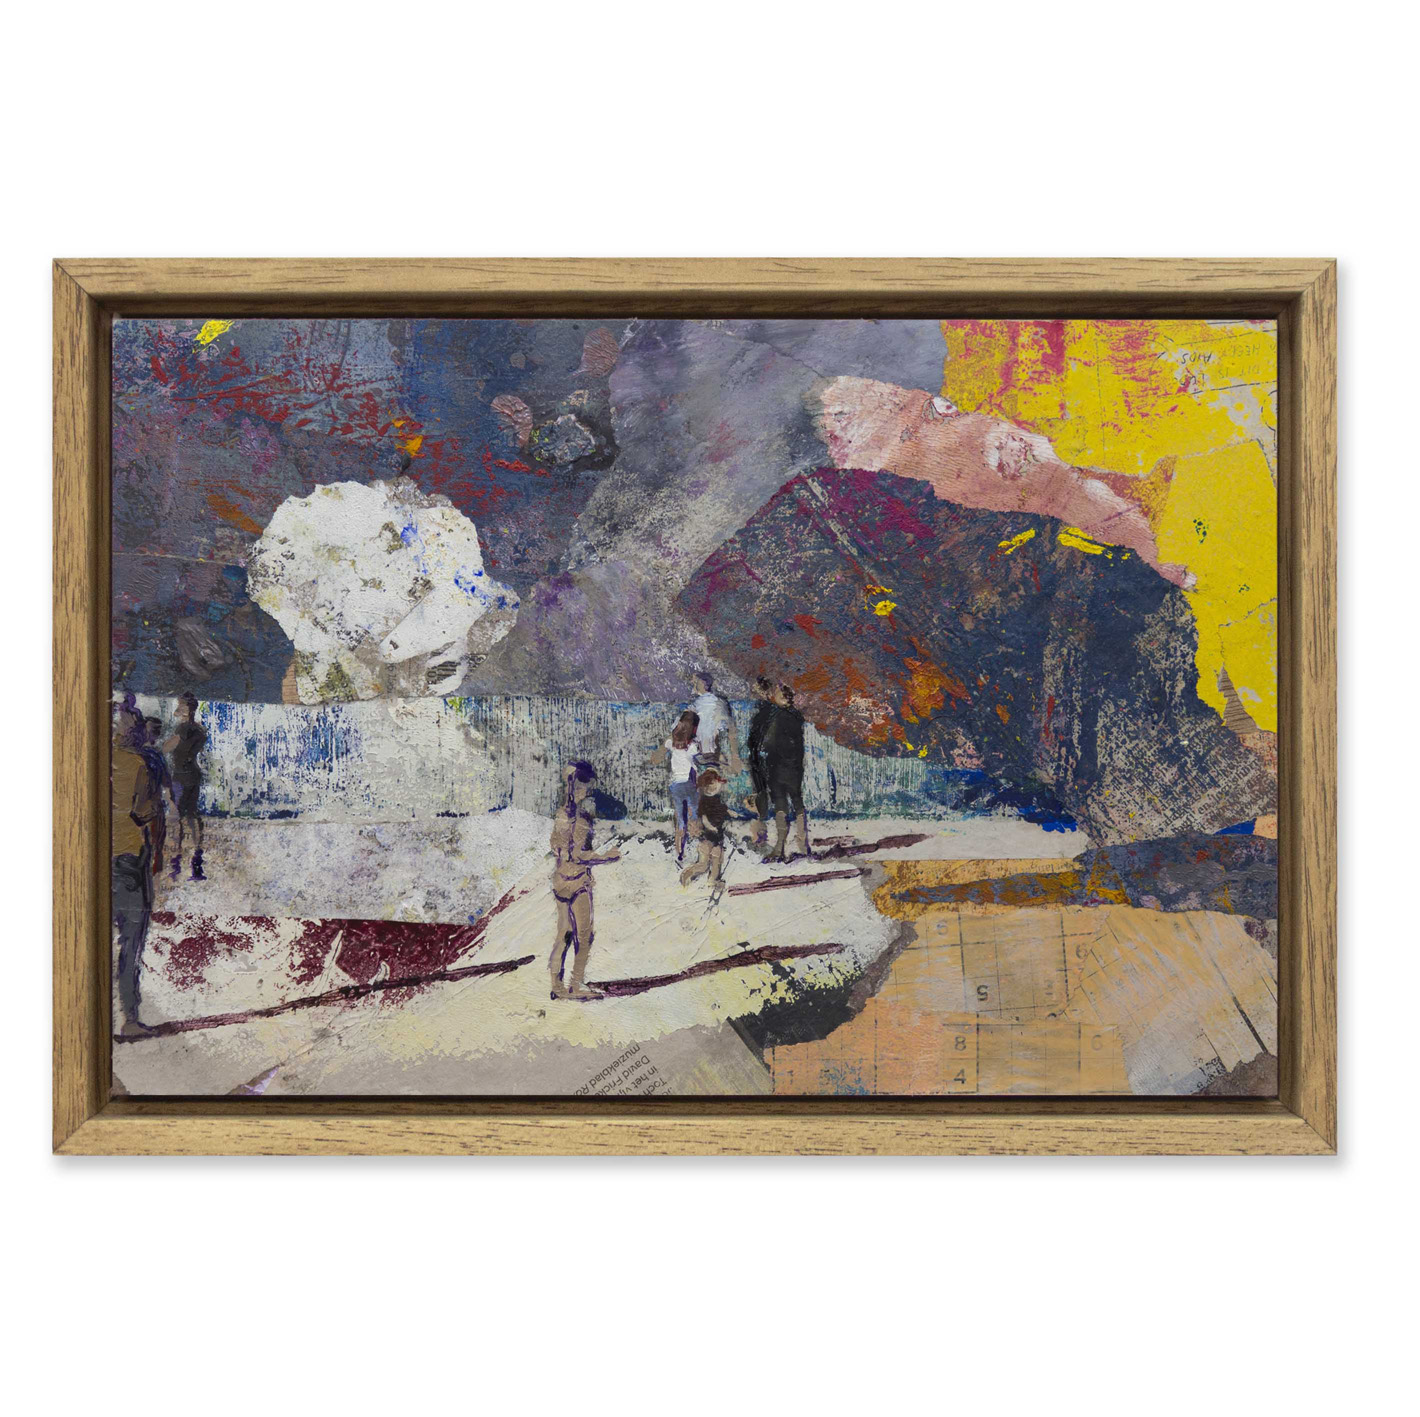 Casper Verborg   Lockdown Observation (beach scene)   oil and spray paint on newspapers, mounted on wooden panel   20 x 30 cm   2020